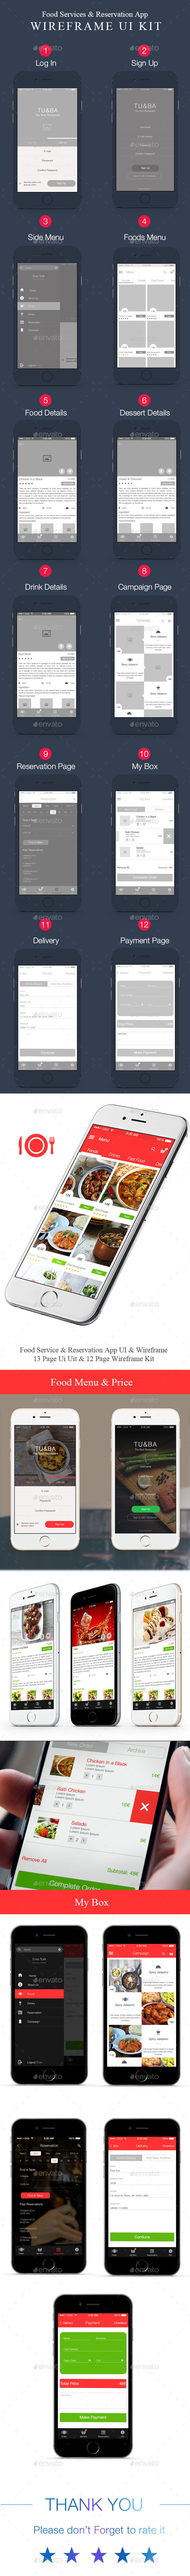 Food App UI & Wireframe Kit - User Interfaces Web Elements